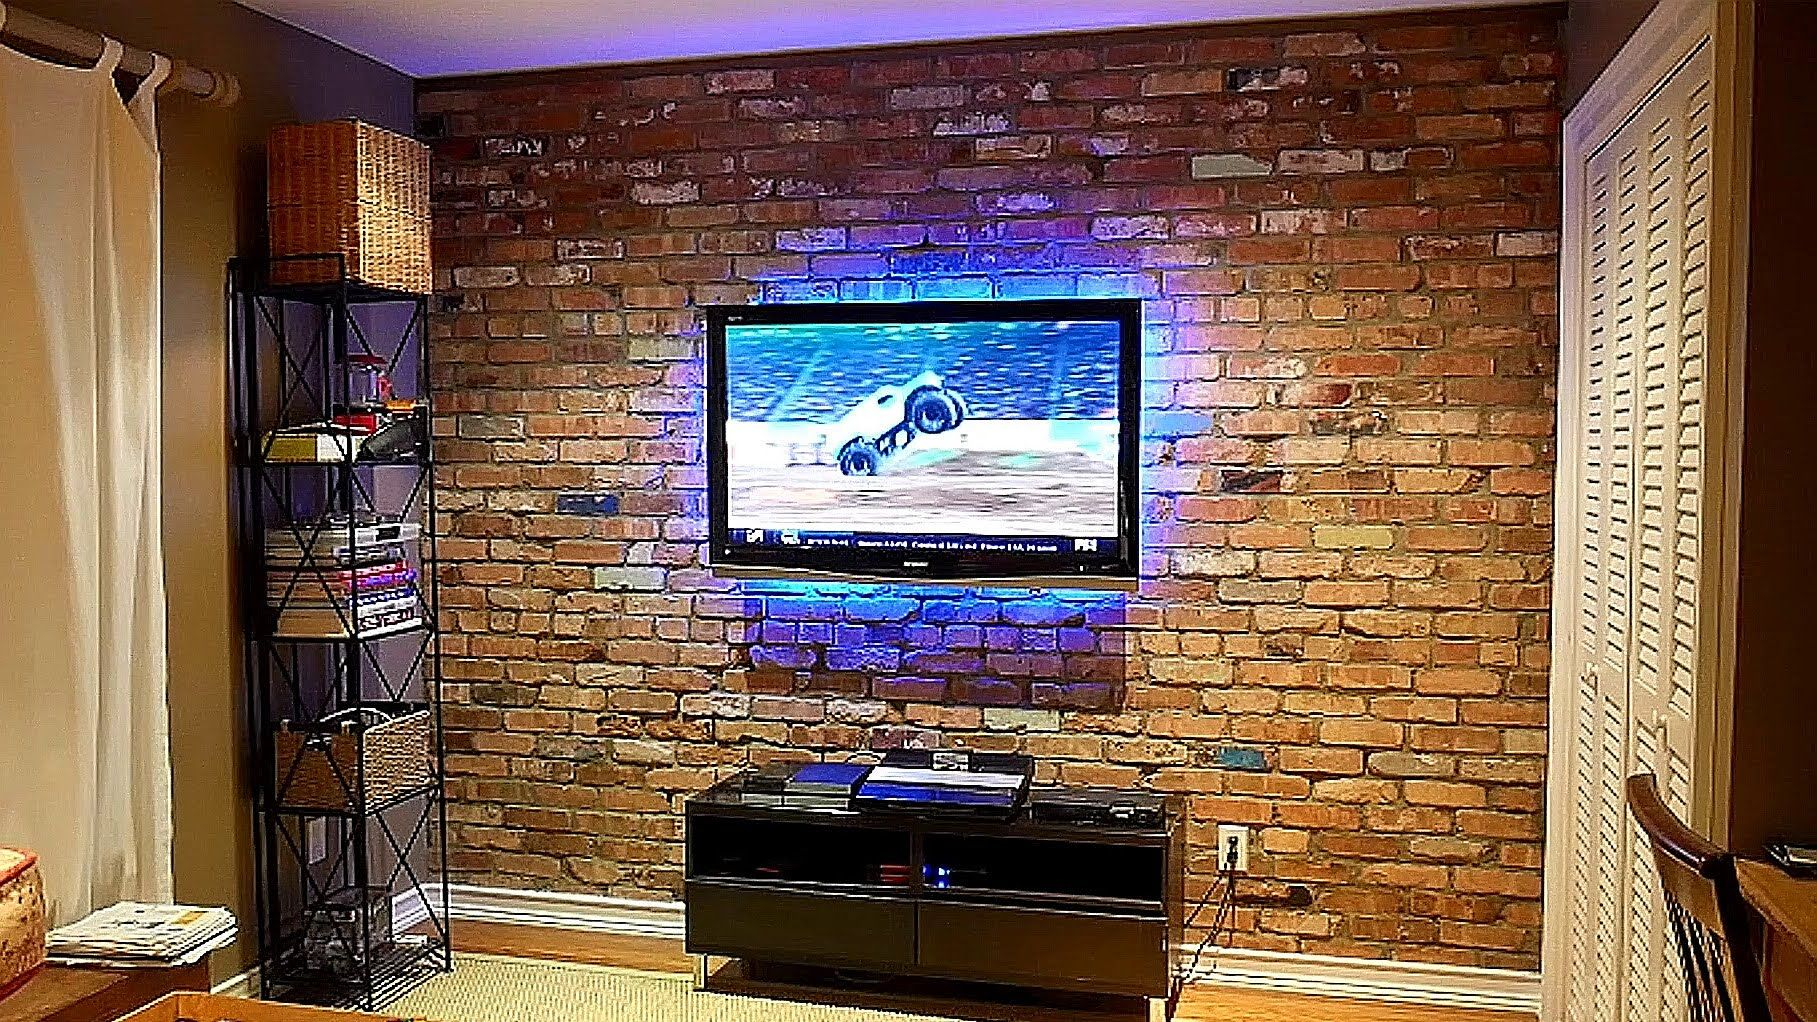 How I Built An Exposed Brick Veneer On An Interior Wall In My House Https Youtu Be L3fwccrdubs Brick Veneer Brick Veneer Wall Exposed Brick